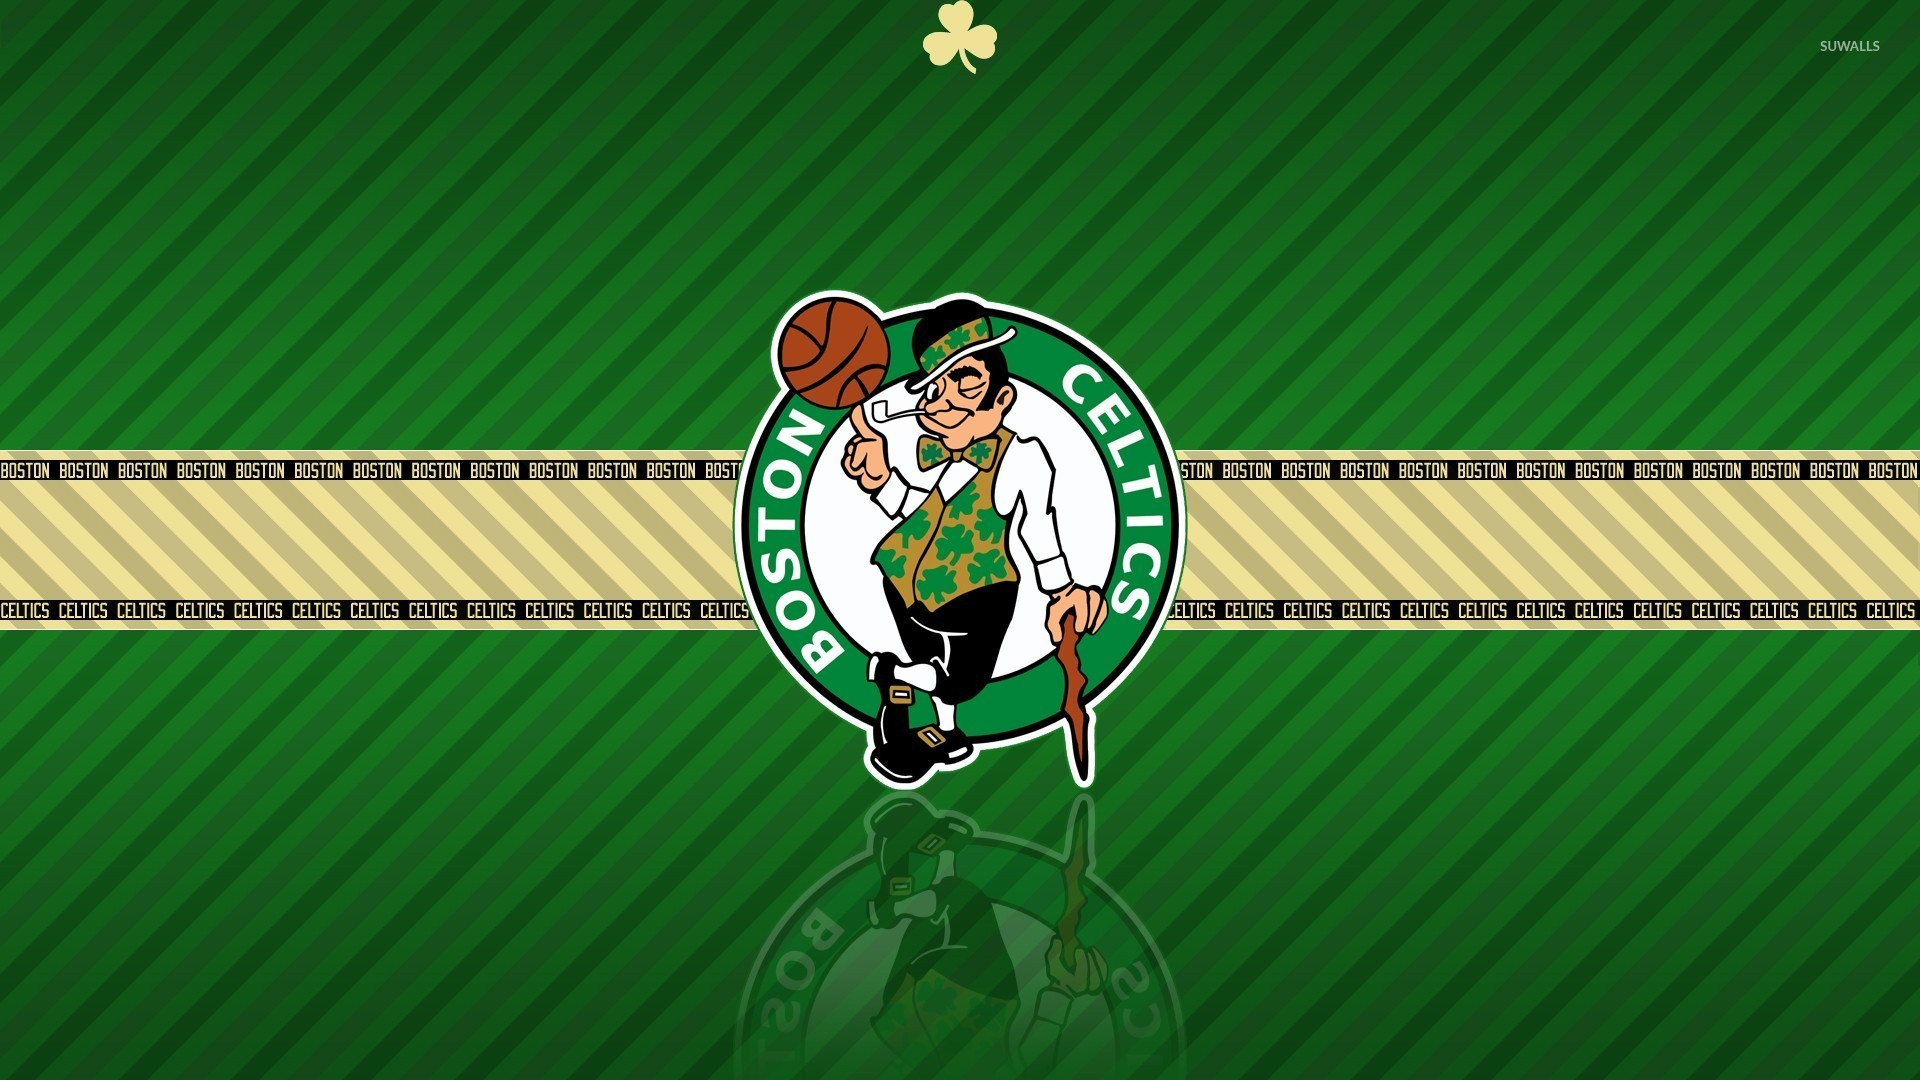 Res: 1920x1080, Boston Celtics logo wallpaper